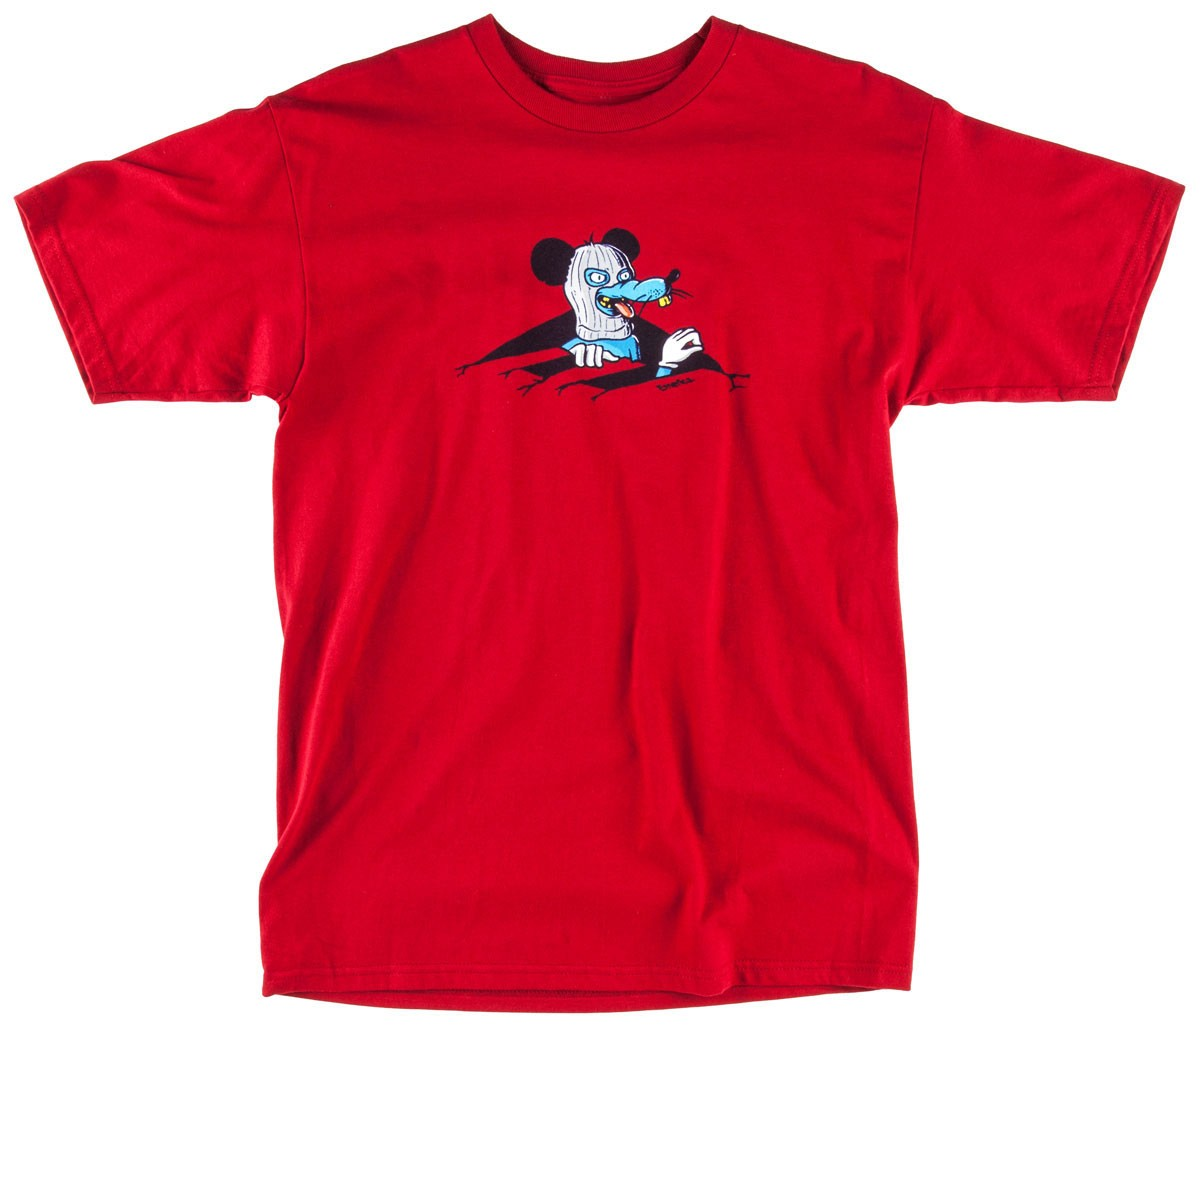 Emerica Rat Hole T-Shirt - Cardinal